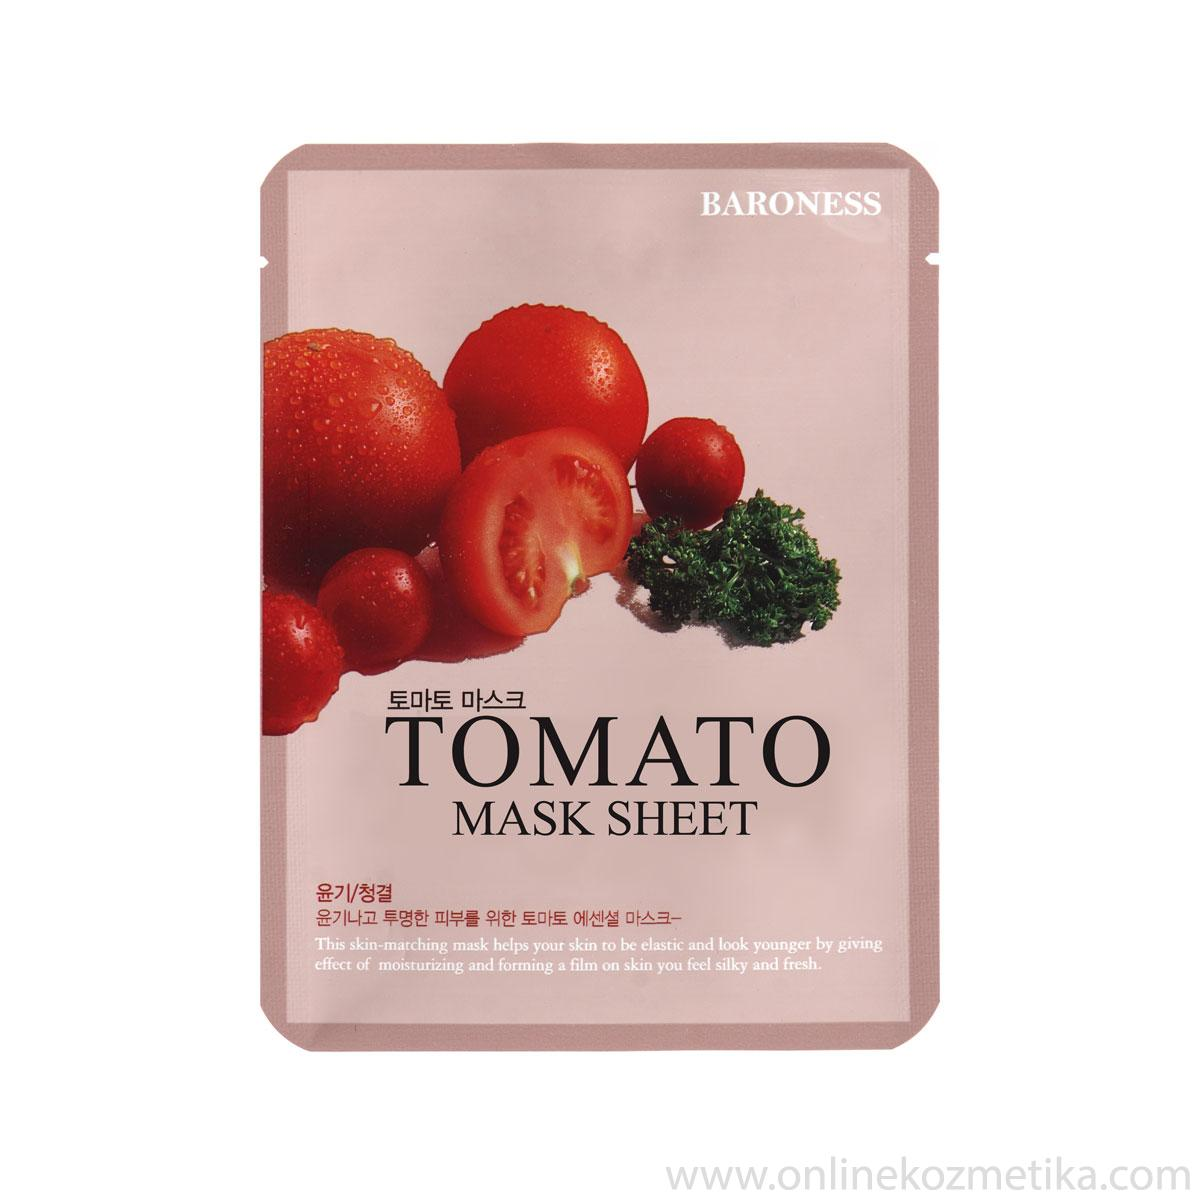 BARONESS MASK SHEET TOMATO